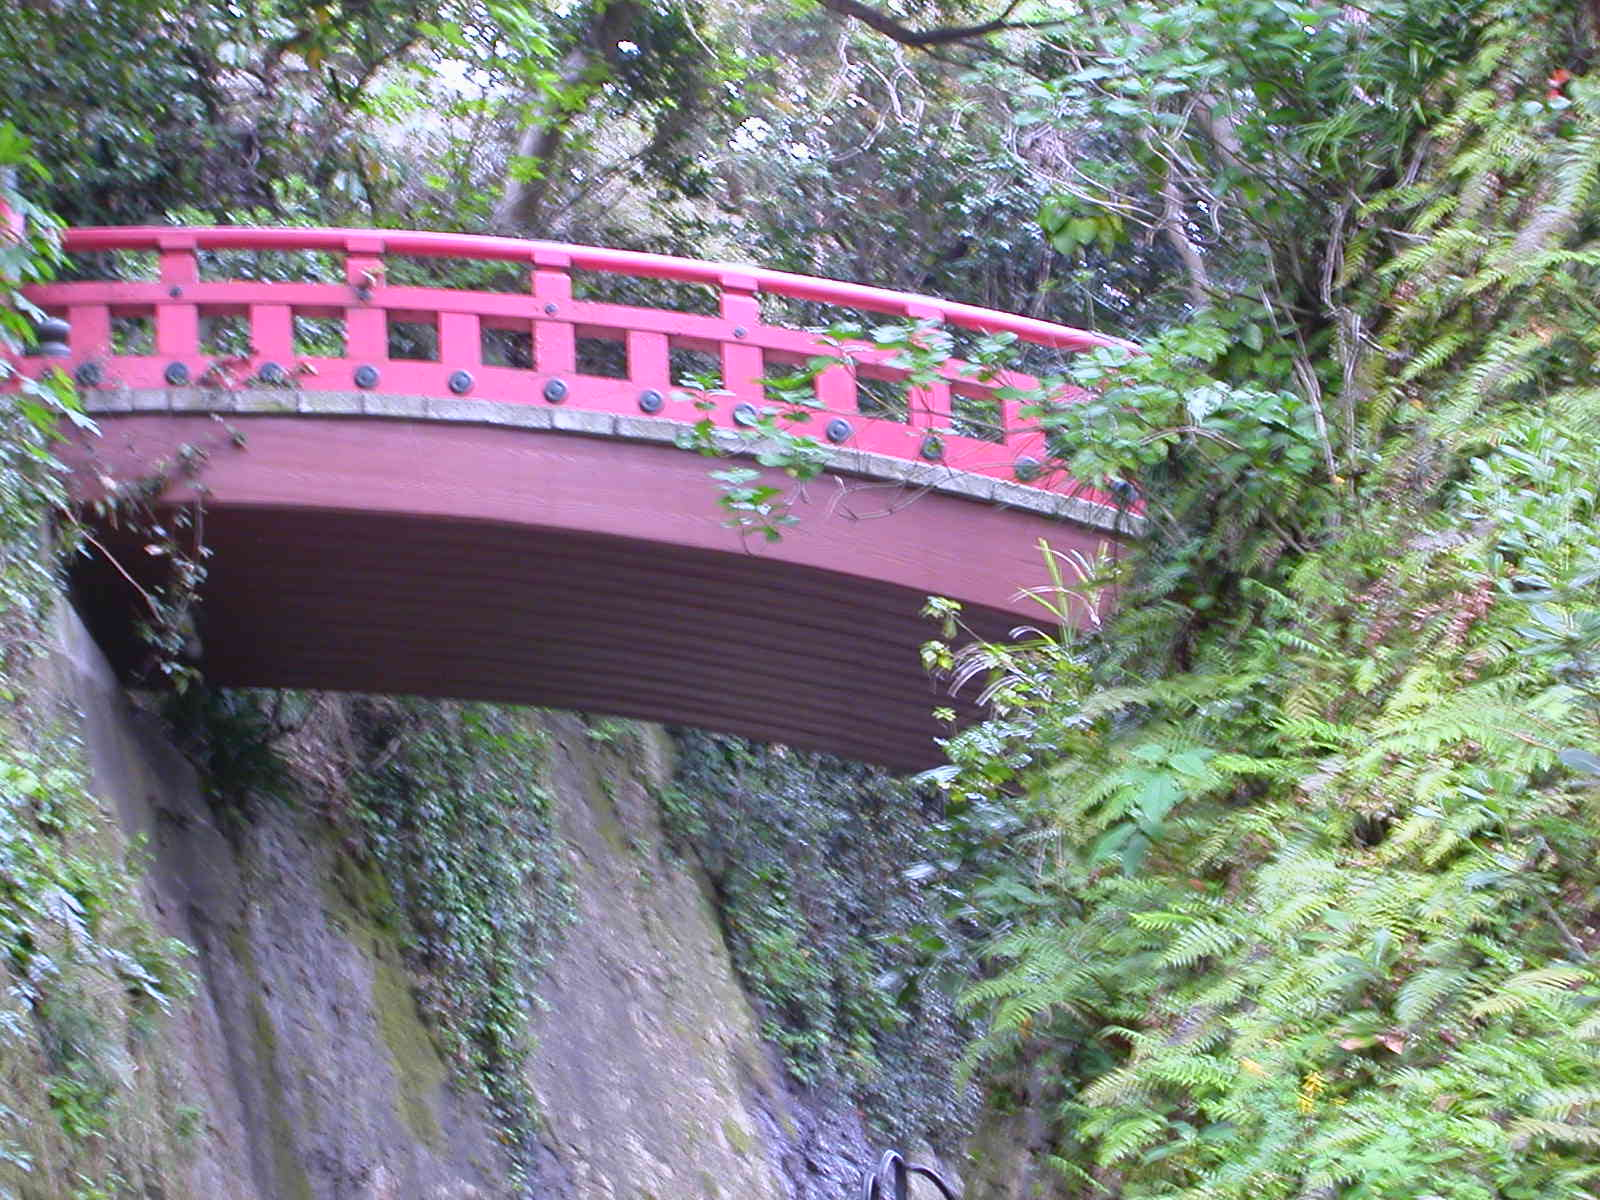 Bridge, Enoshima, Japan, april 2002